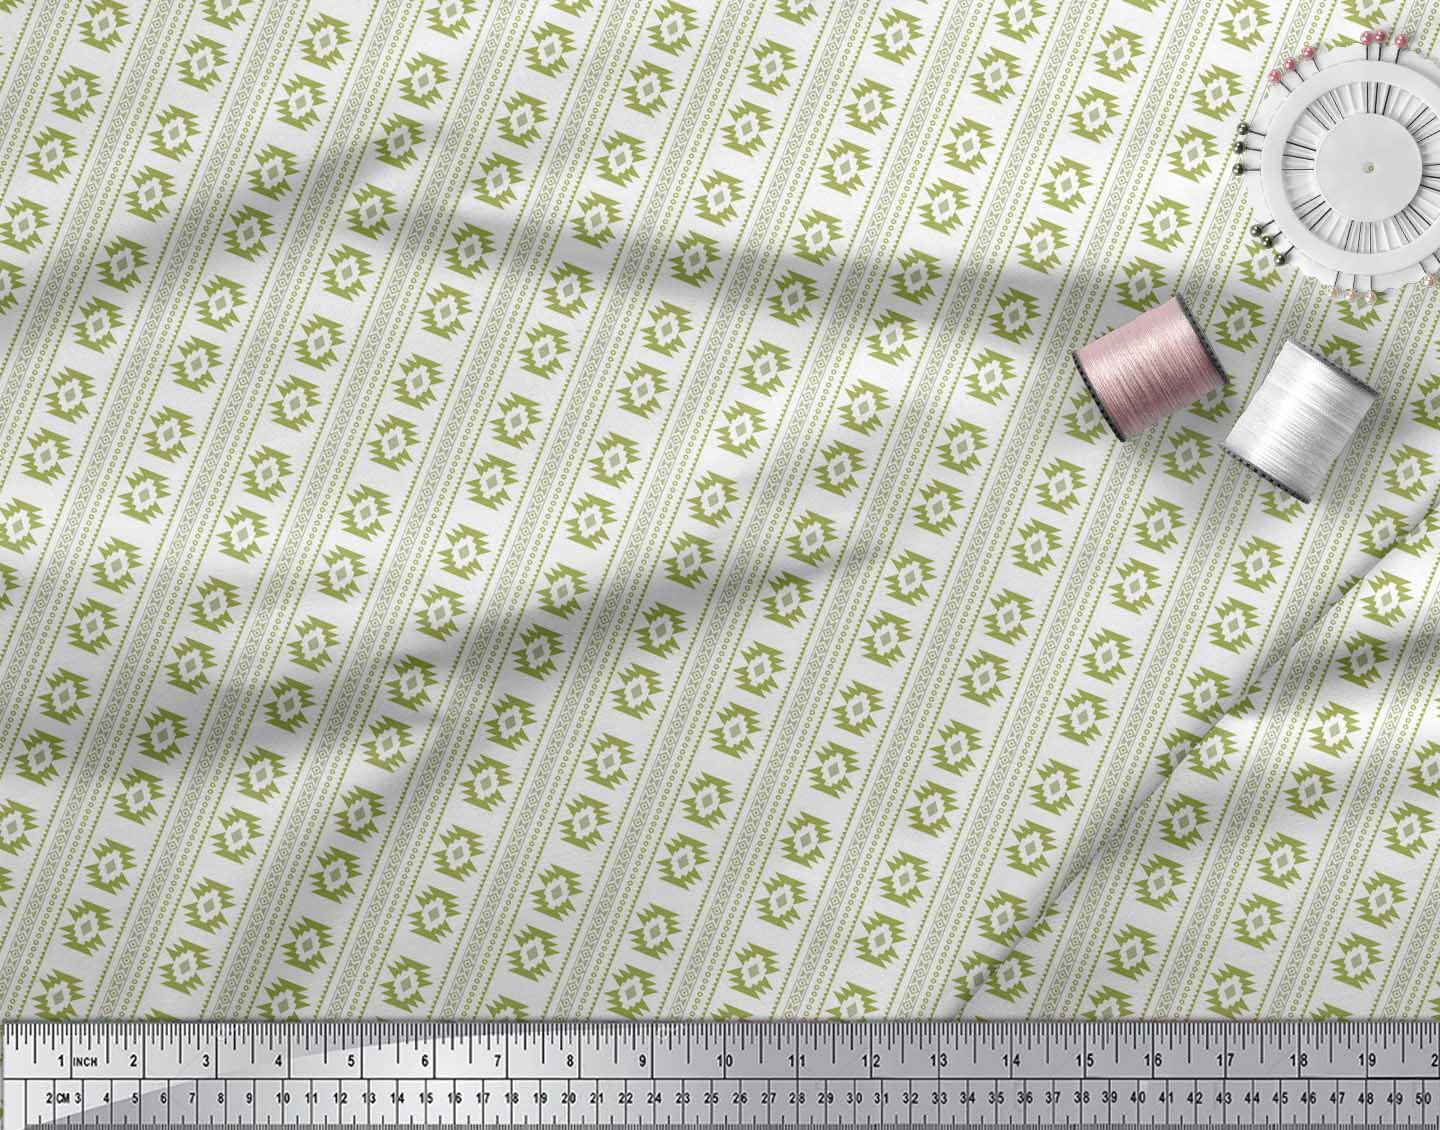 Soimoi-Green-Cotton-Poplin-Fabric-Aztec-Geometric-Print-Fabric-by-LeV thumbnail 4